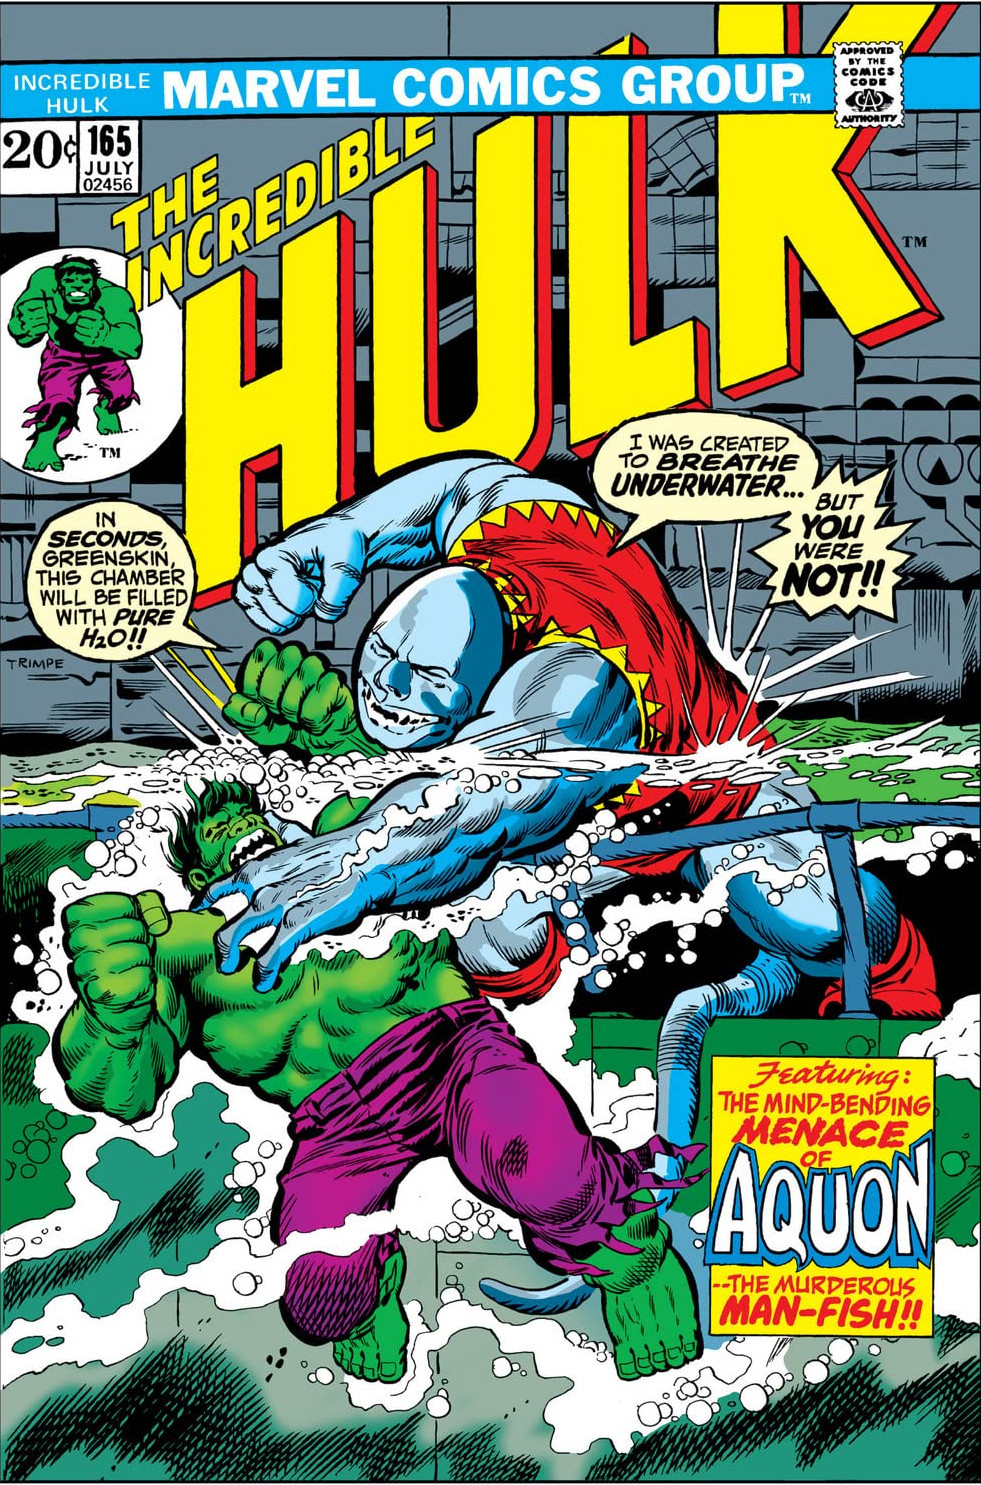 Incredible Hulk Vol 1 165